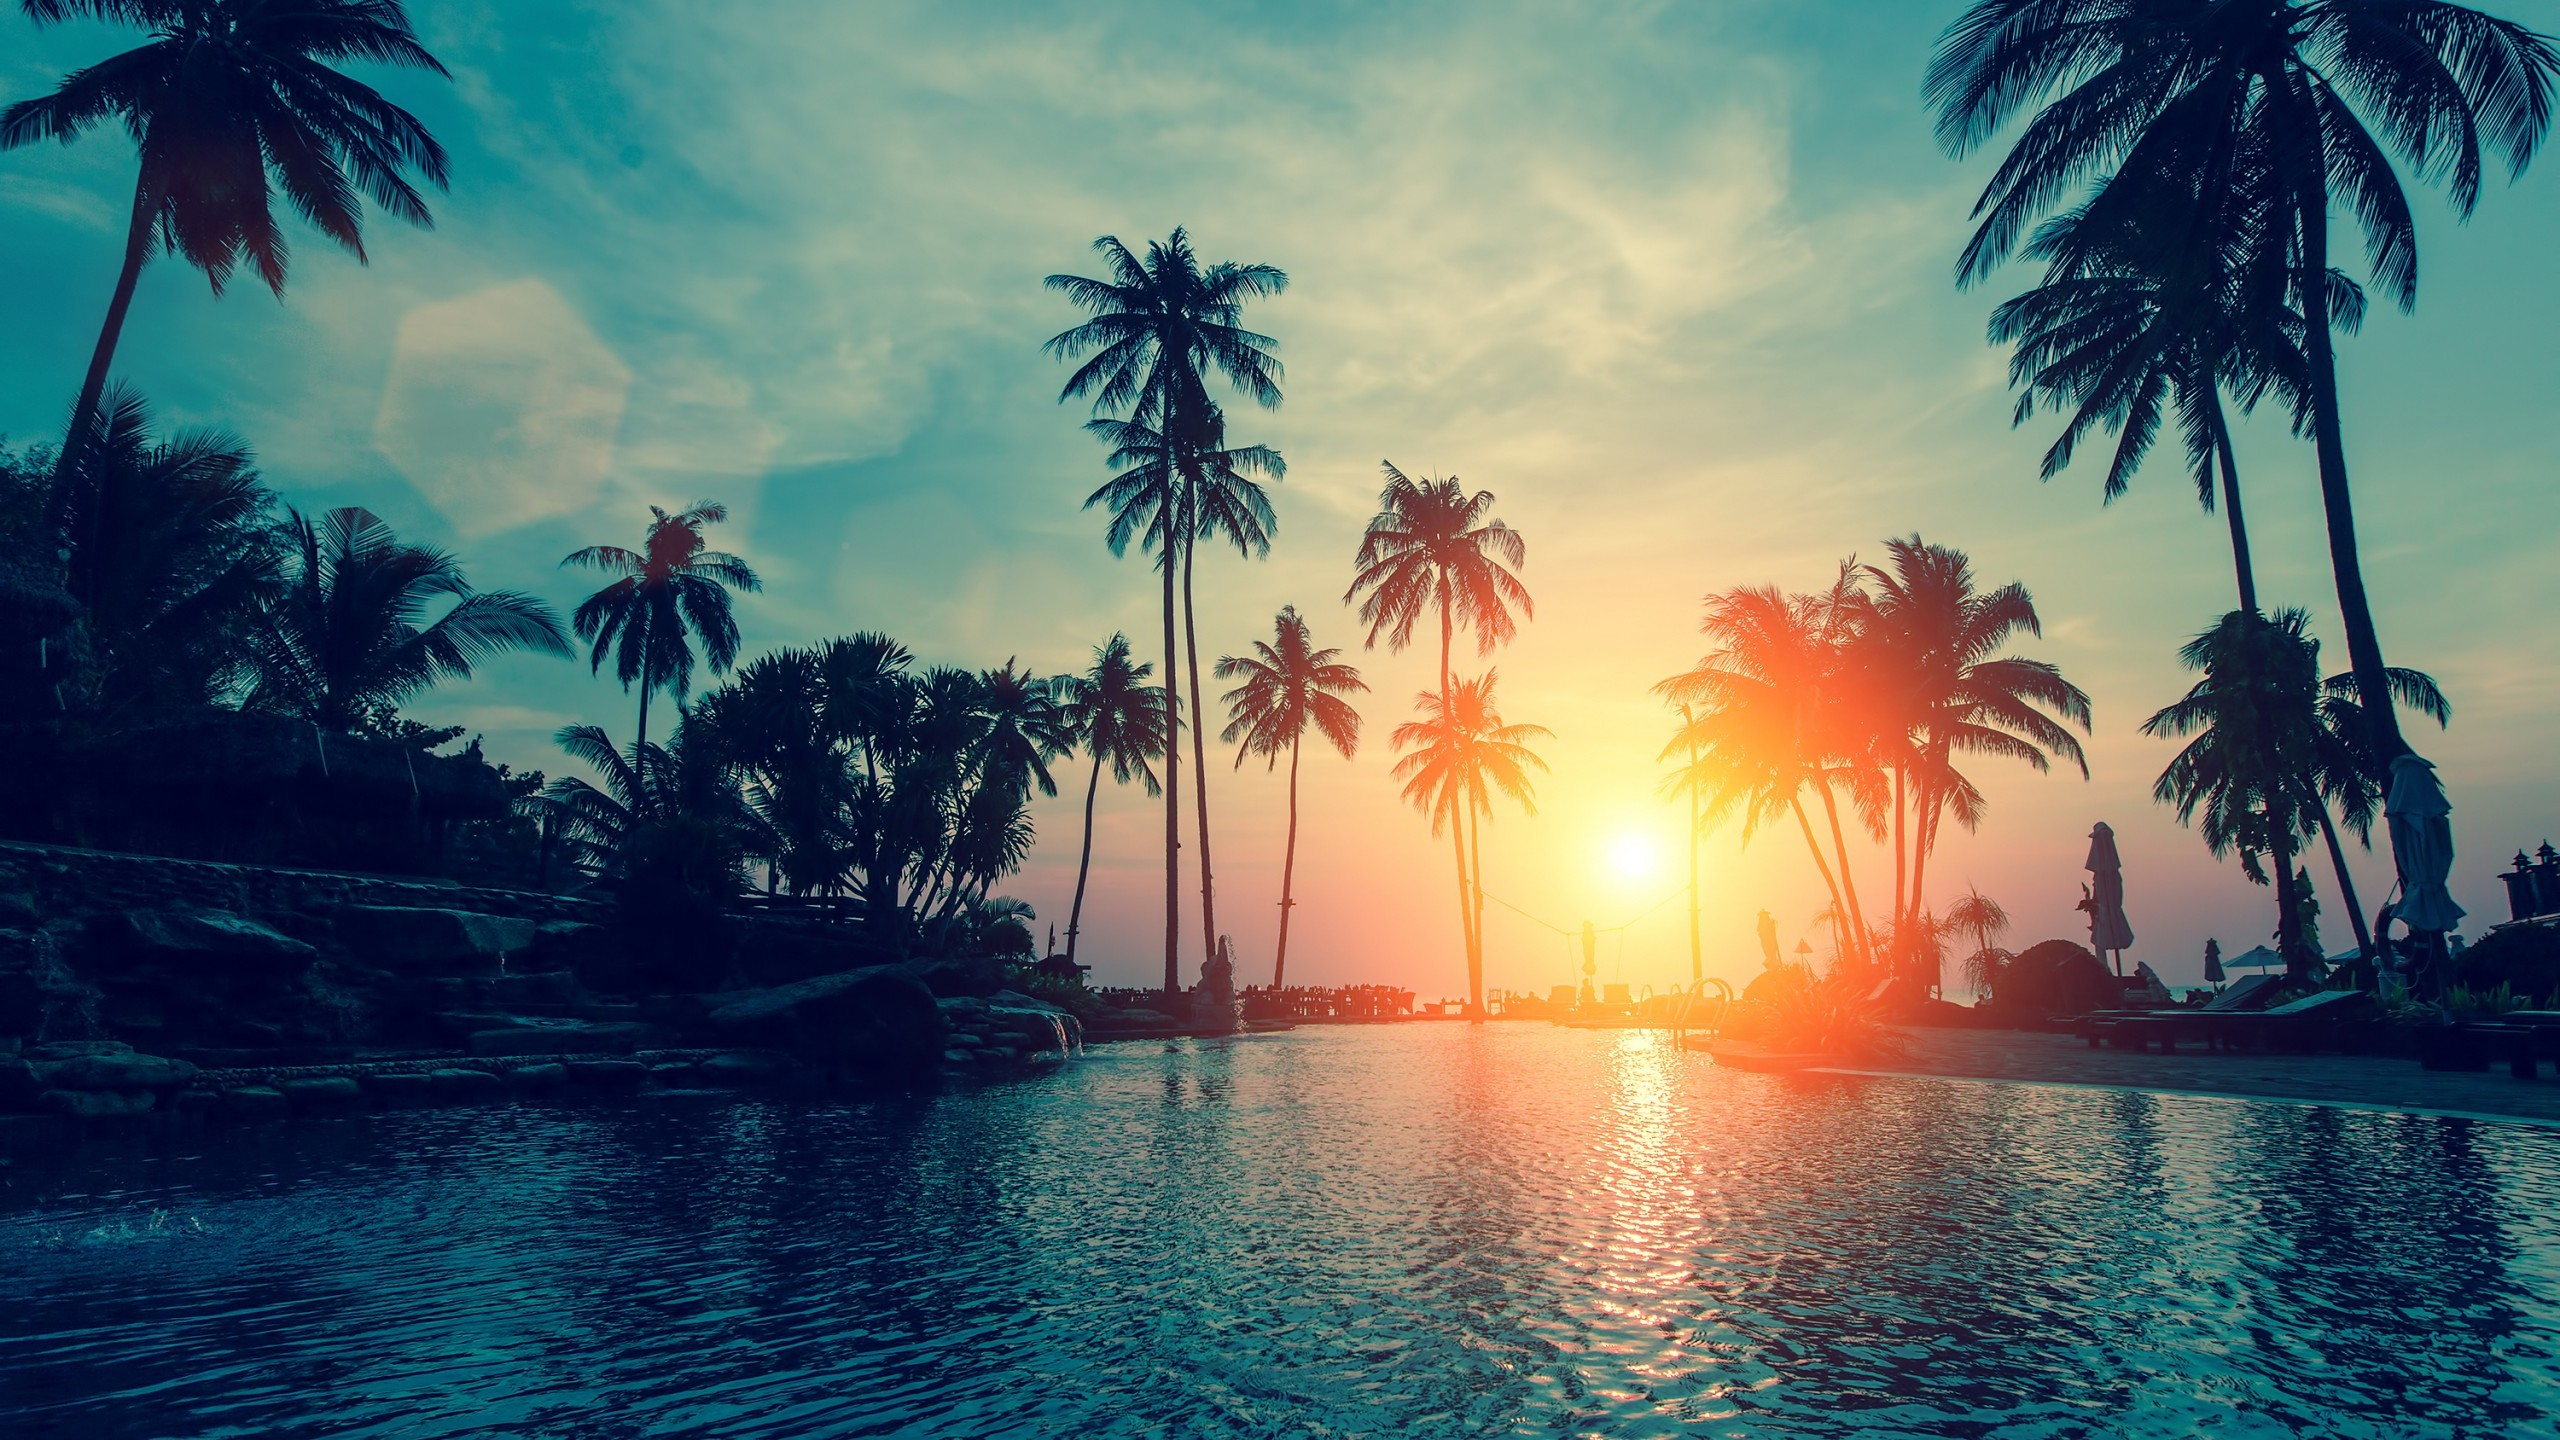 Tags: Sunset, Palm trees …